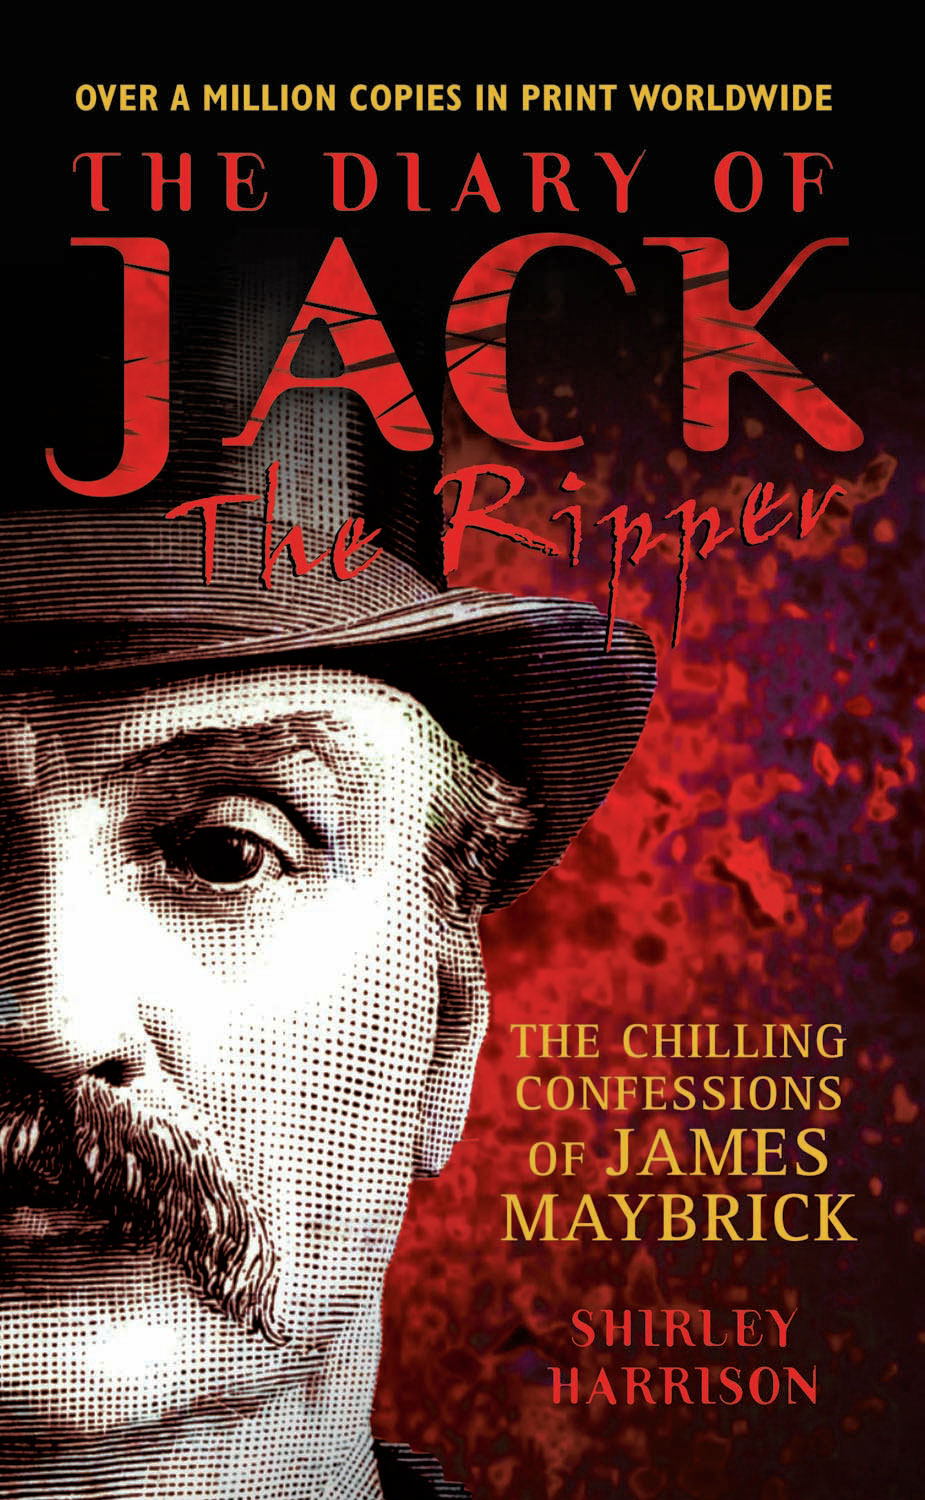 The Diary of Jack the Ripper By: Shirley Harrison